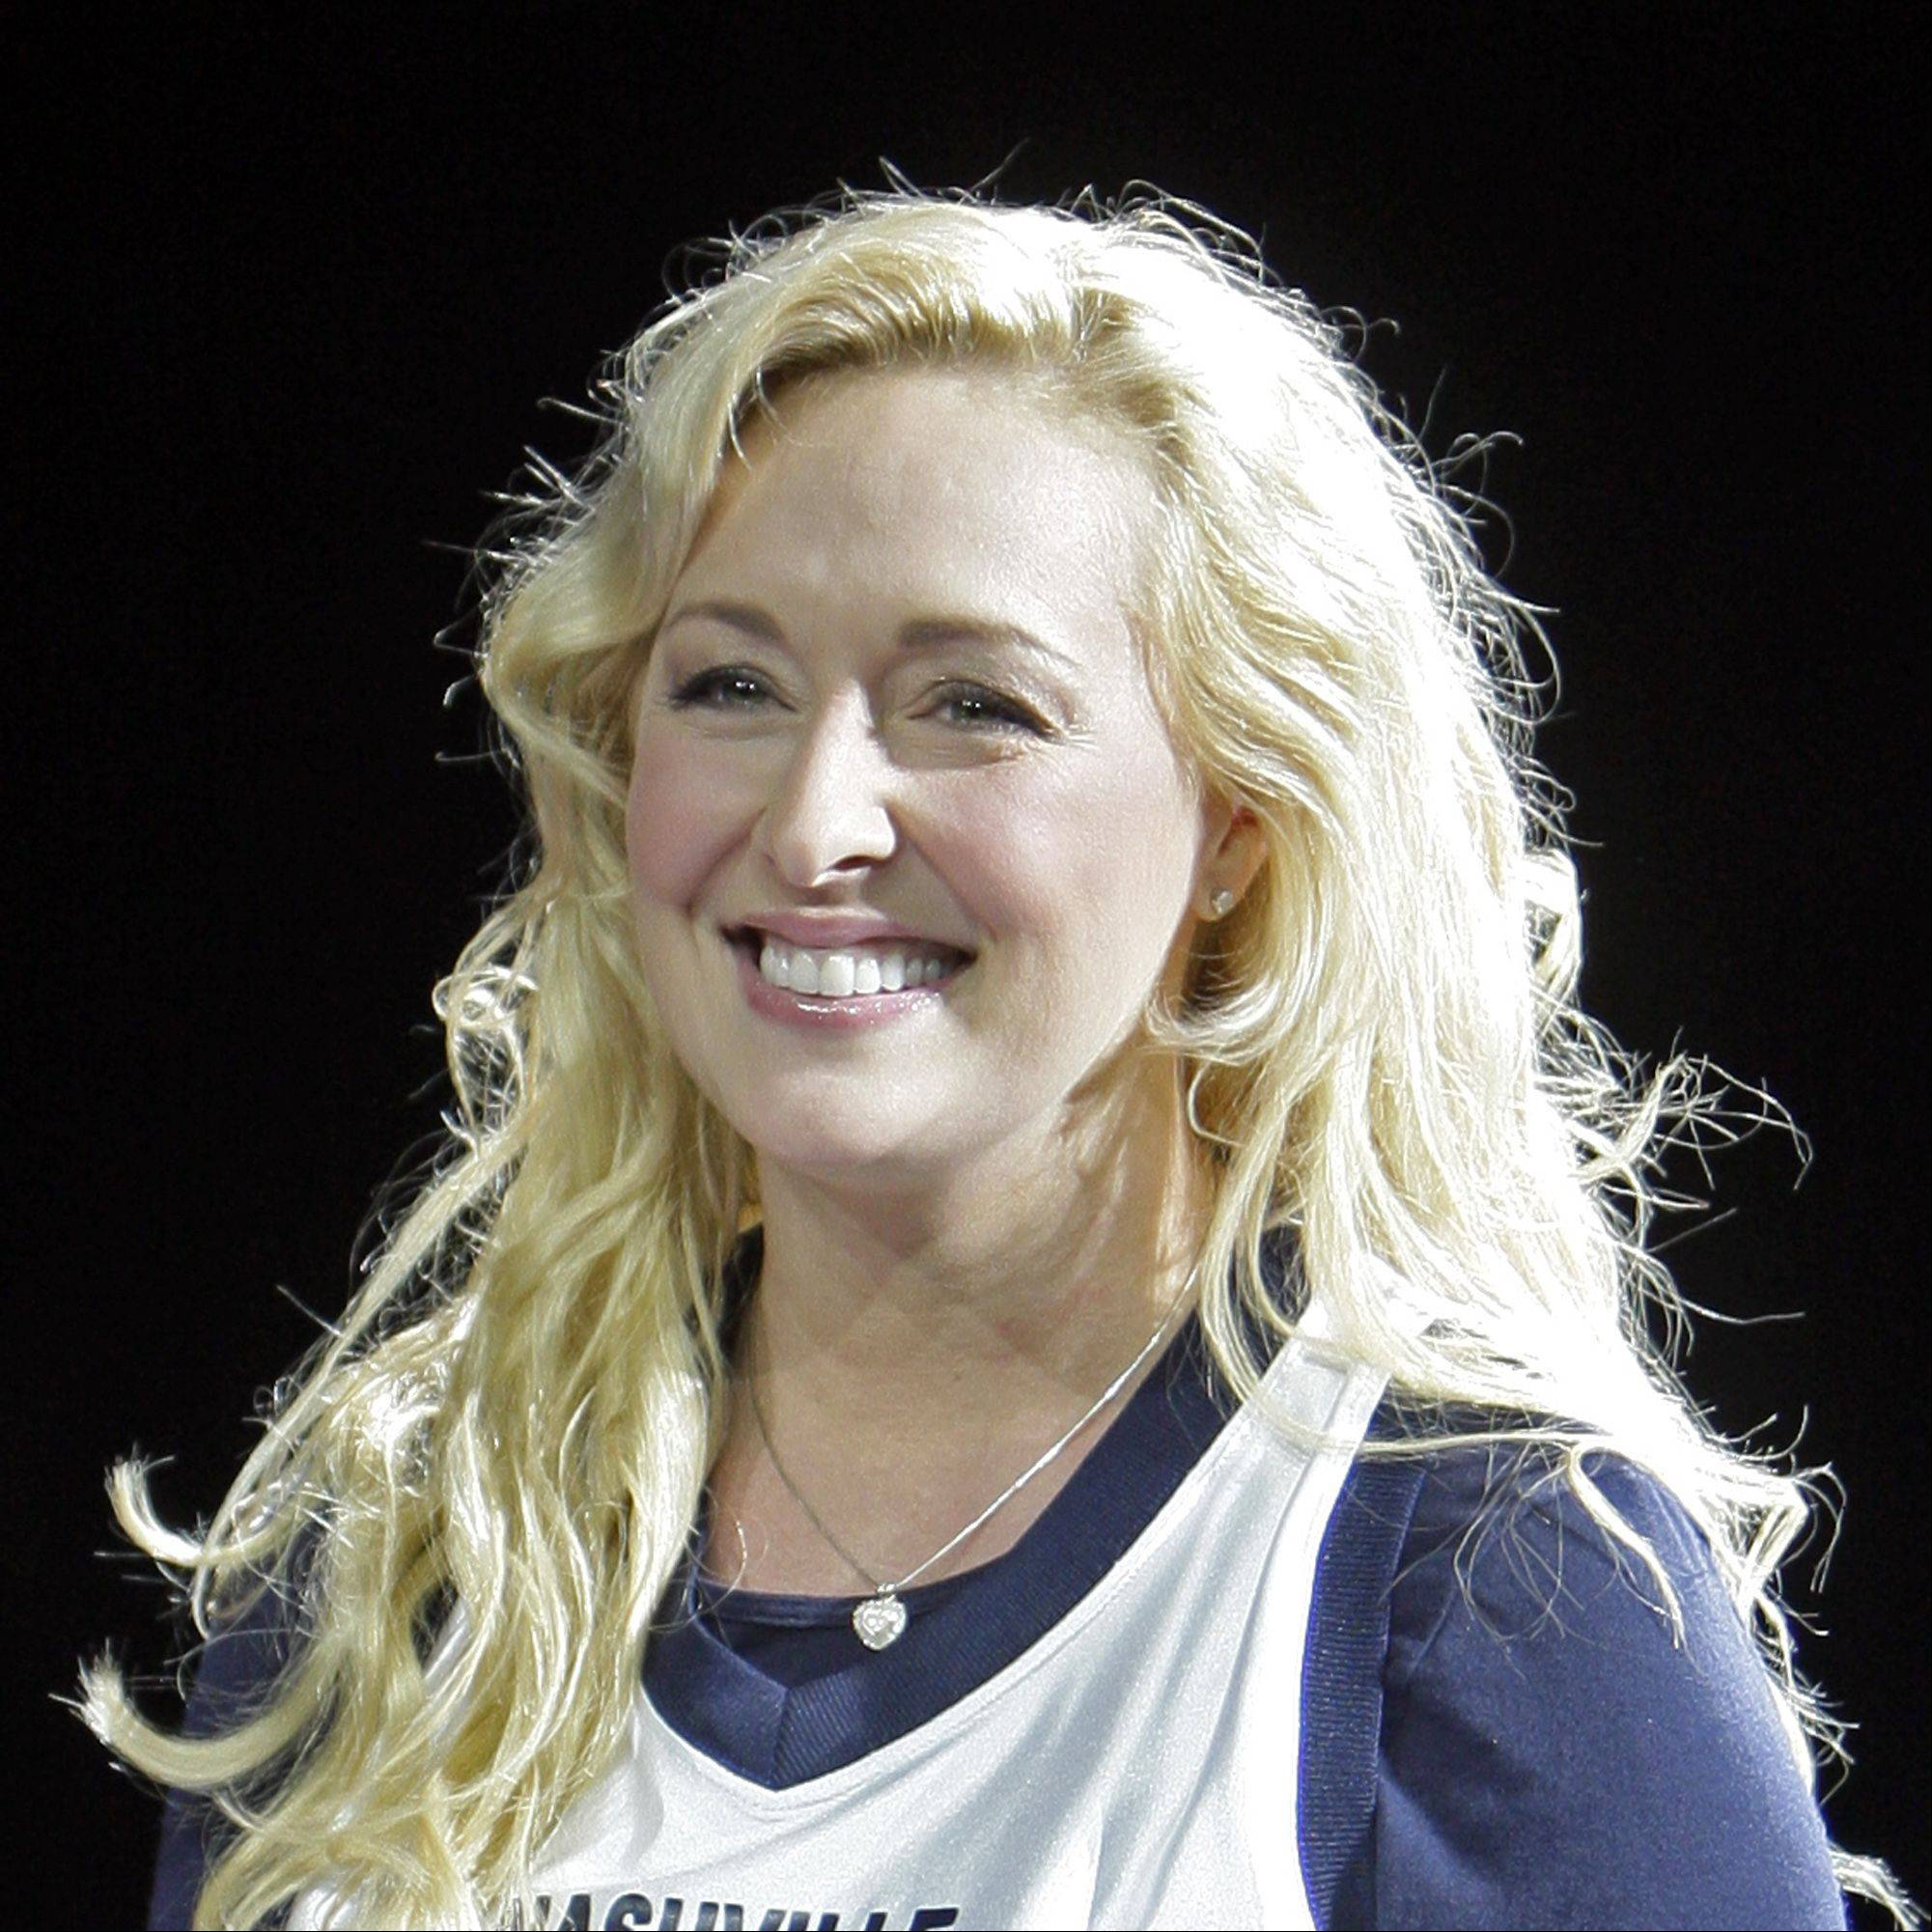 Country singer Mindy McCready died of an apparent suicide Sunday afternoon at her Arkansas home, according to the coroner's office.